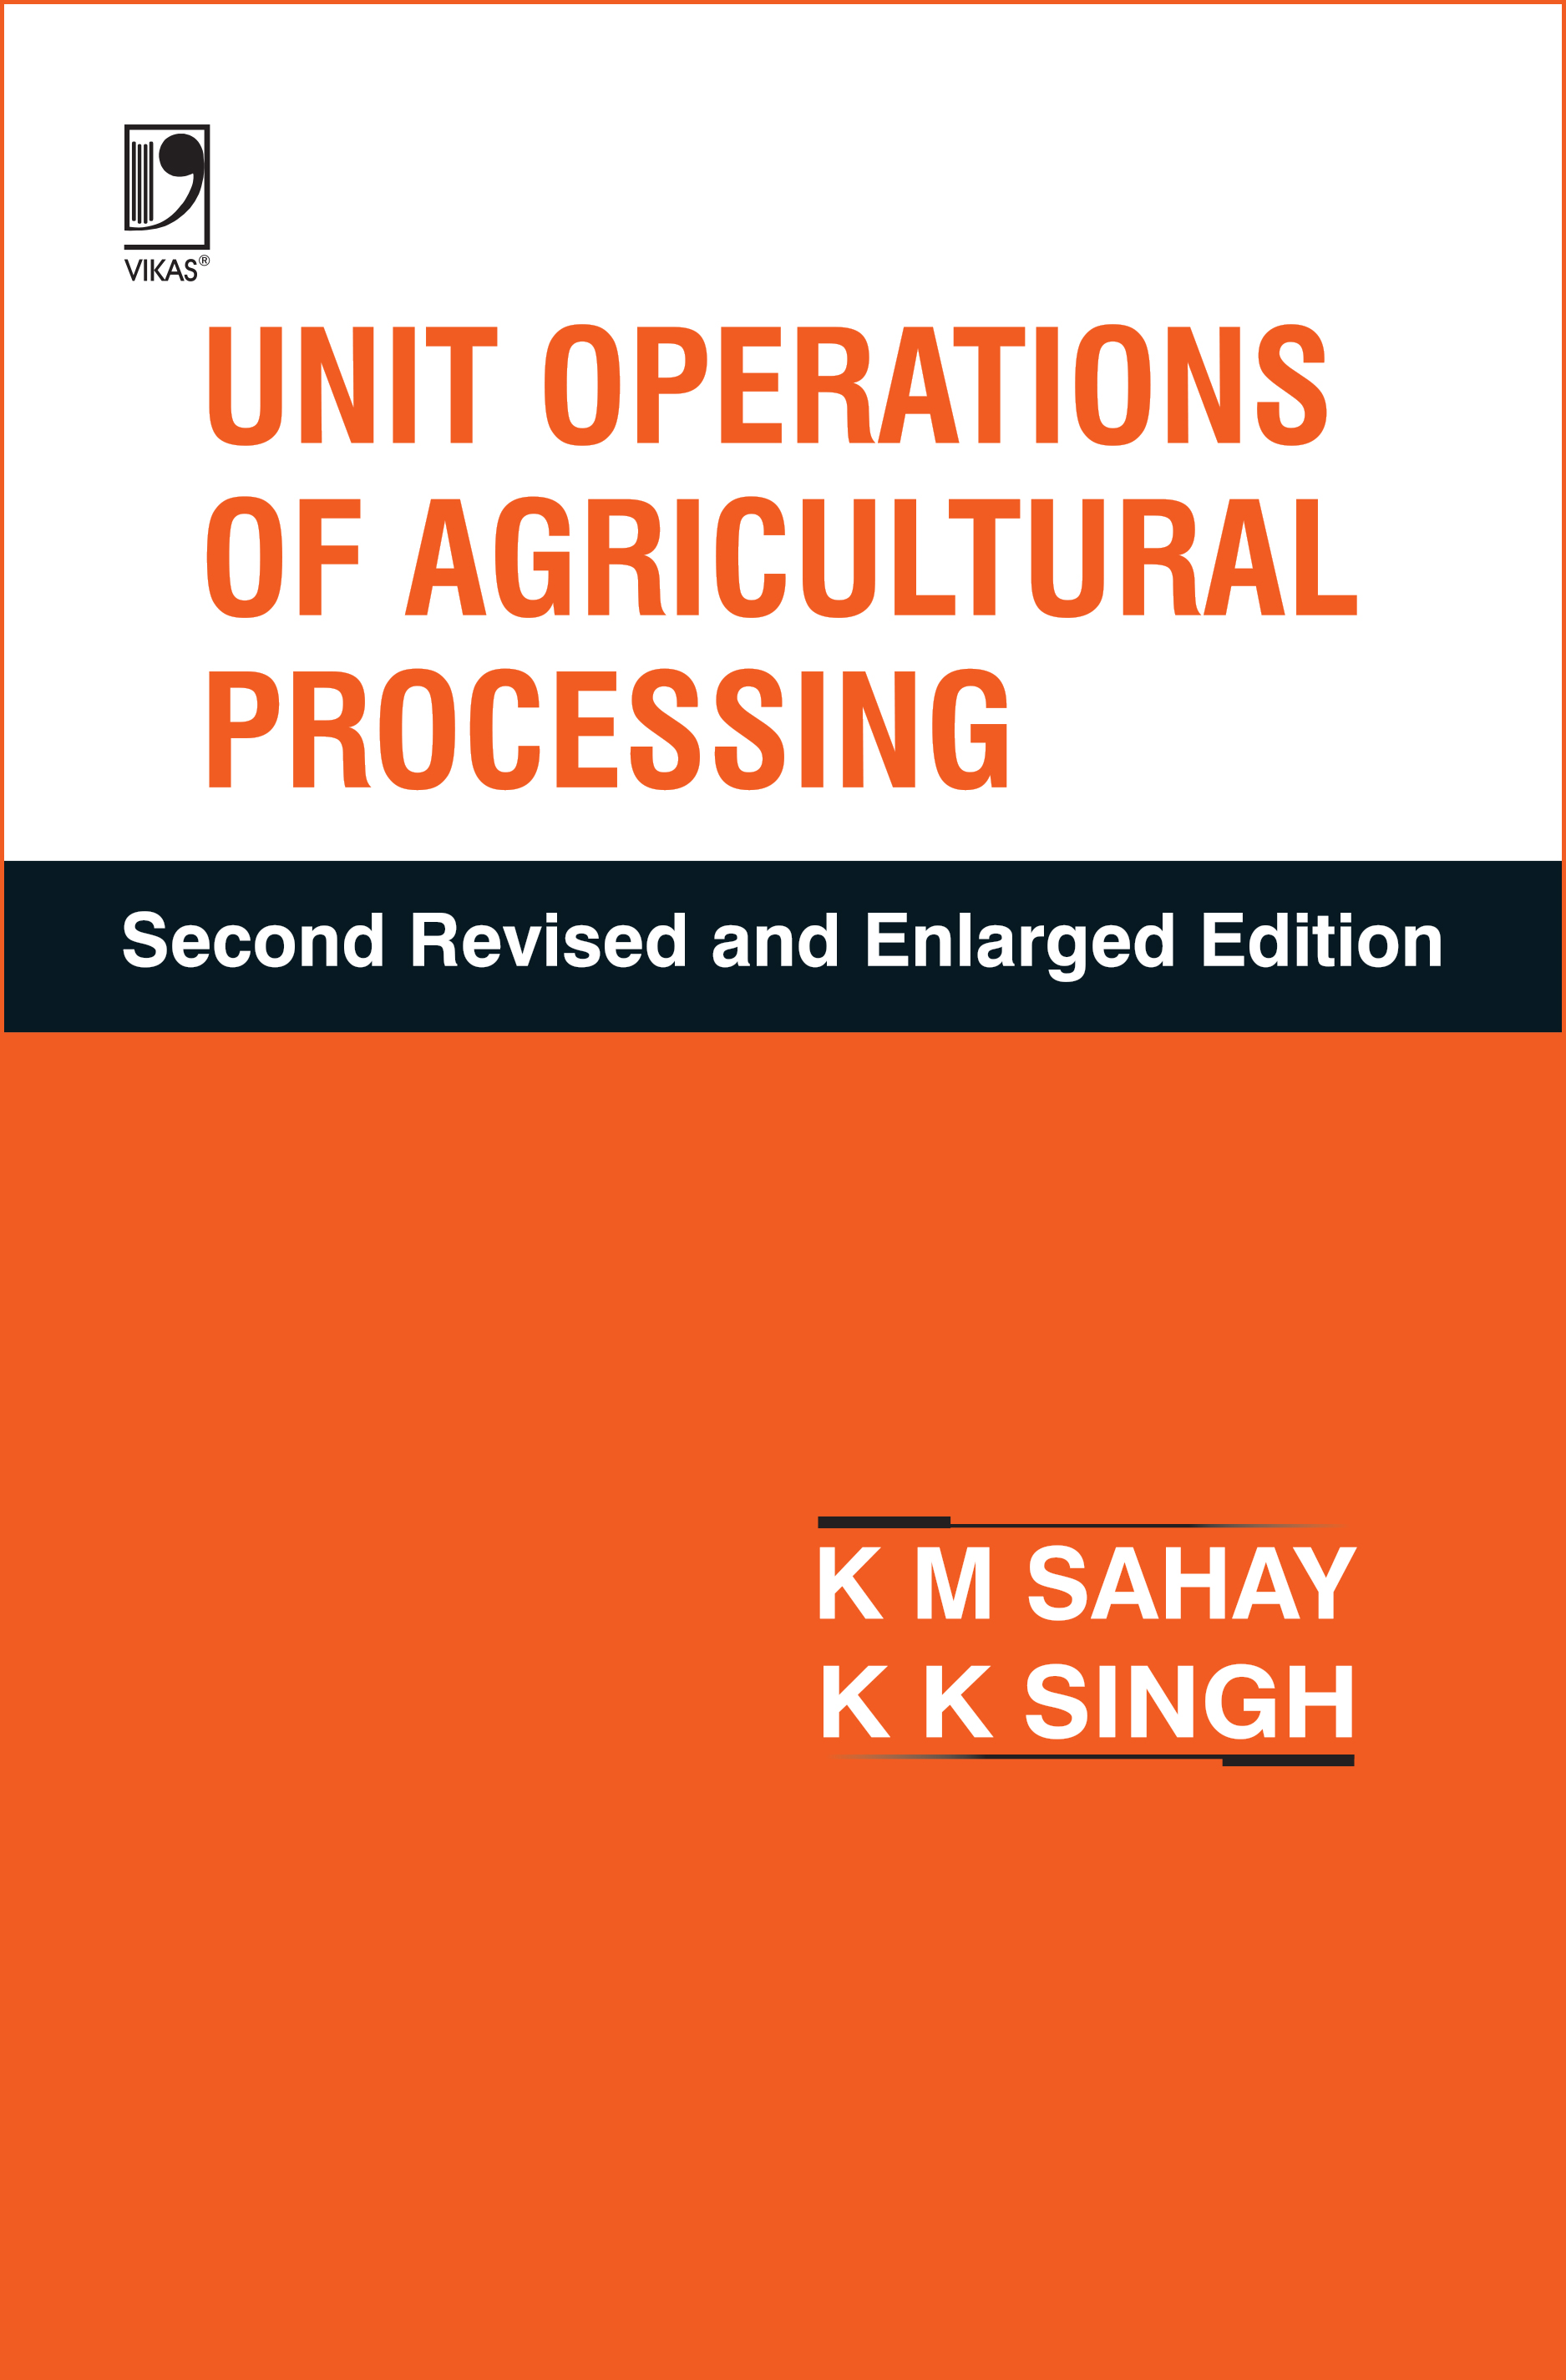 Unit Operations of Agricultural Processing, 2/e  by K M Sahay